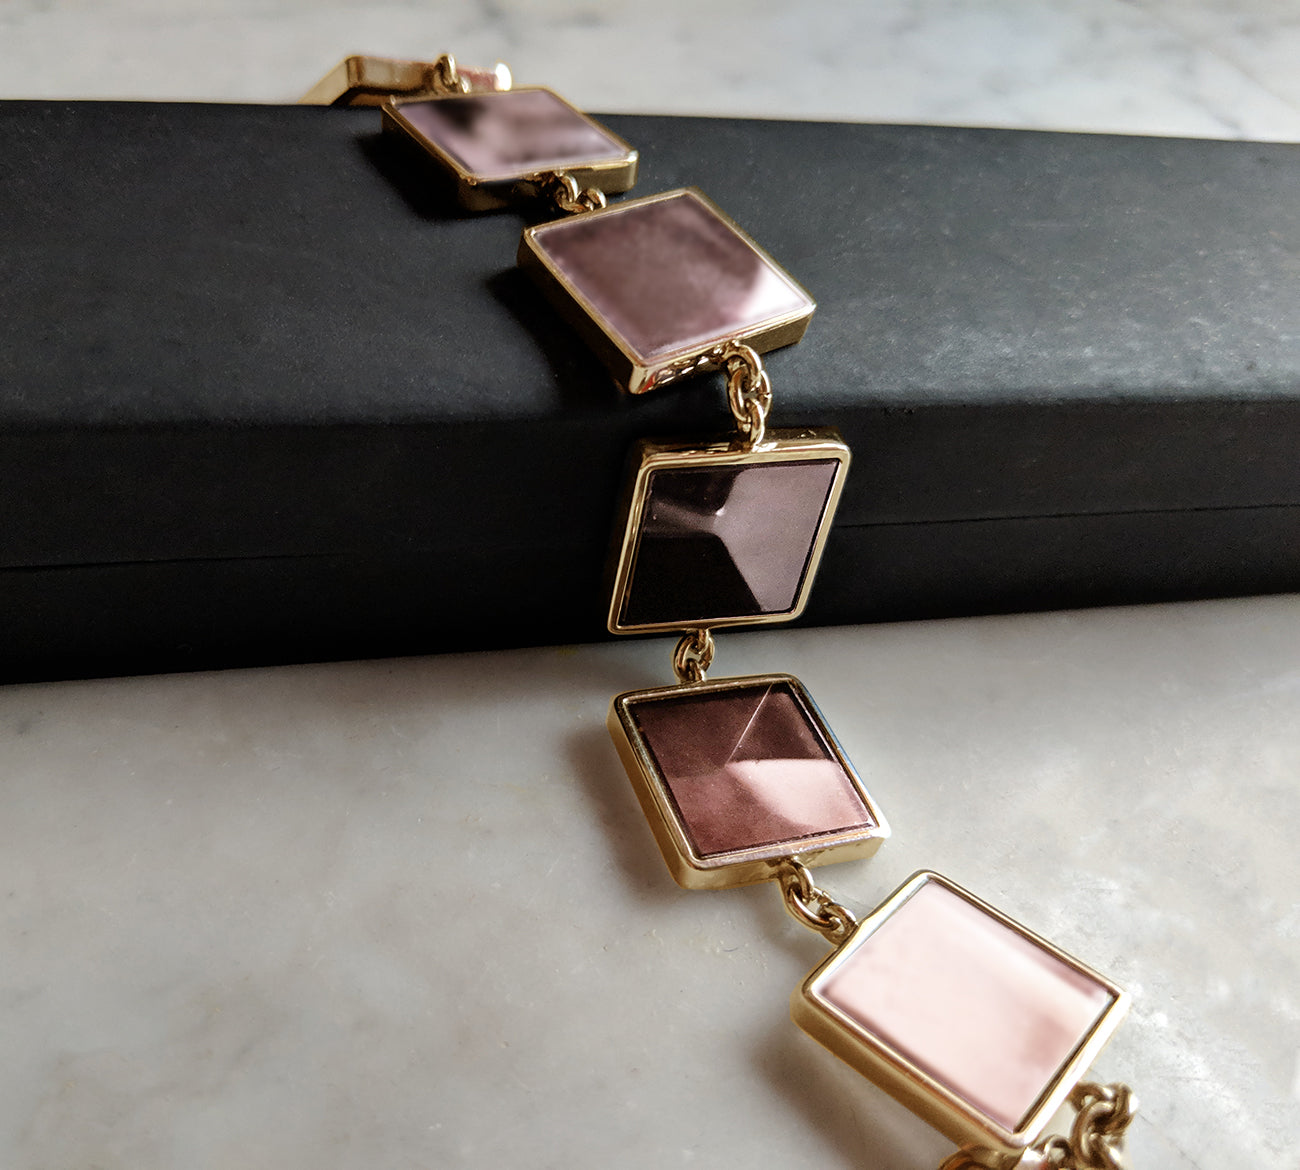 14 Karat Rose Gold Contemporary Bracelet with Big Rose Quartzes